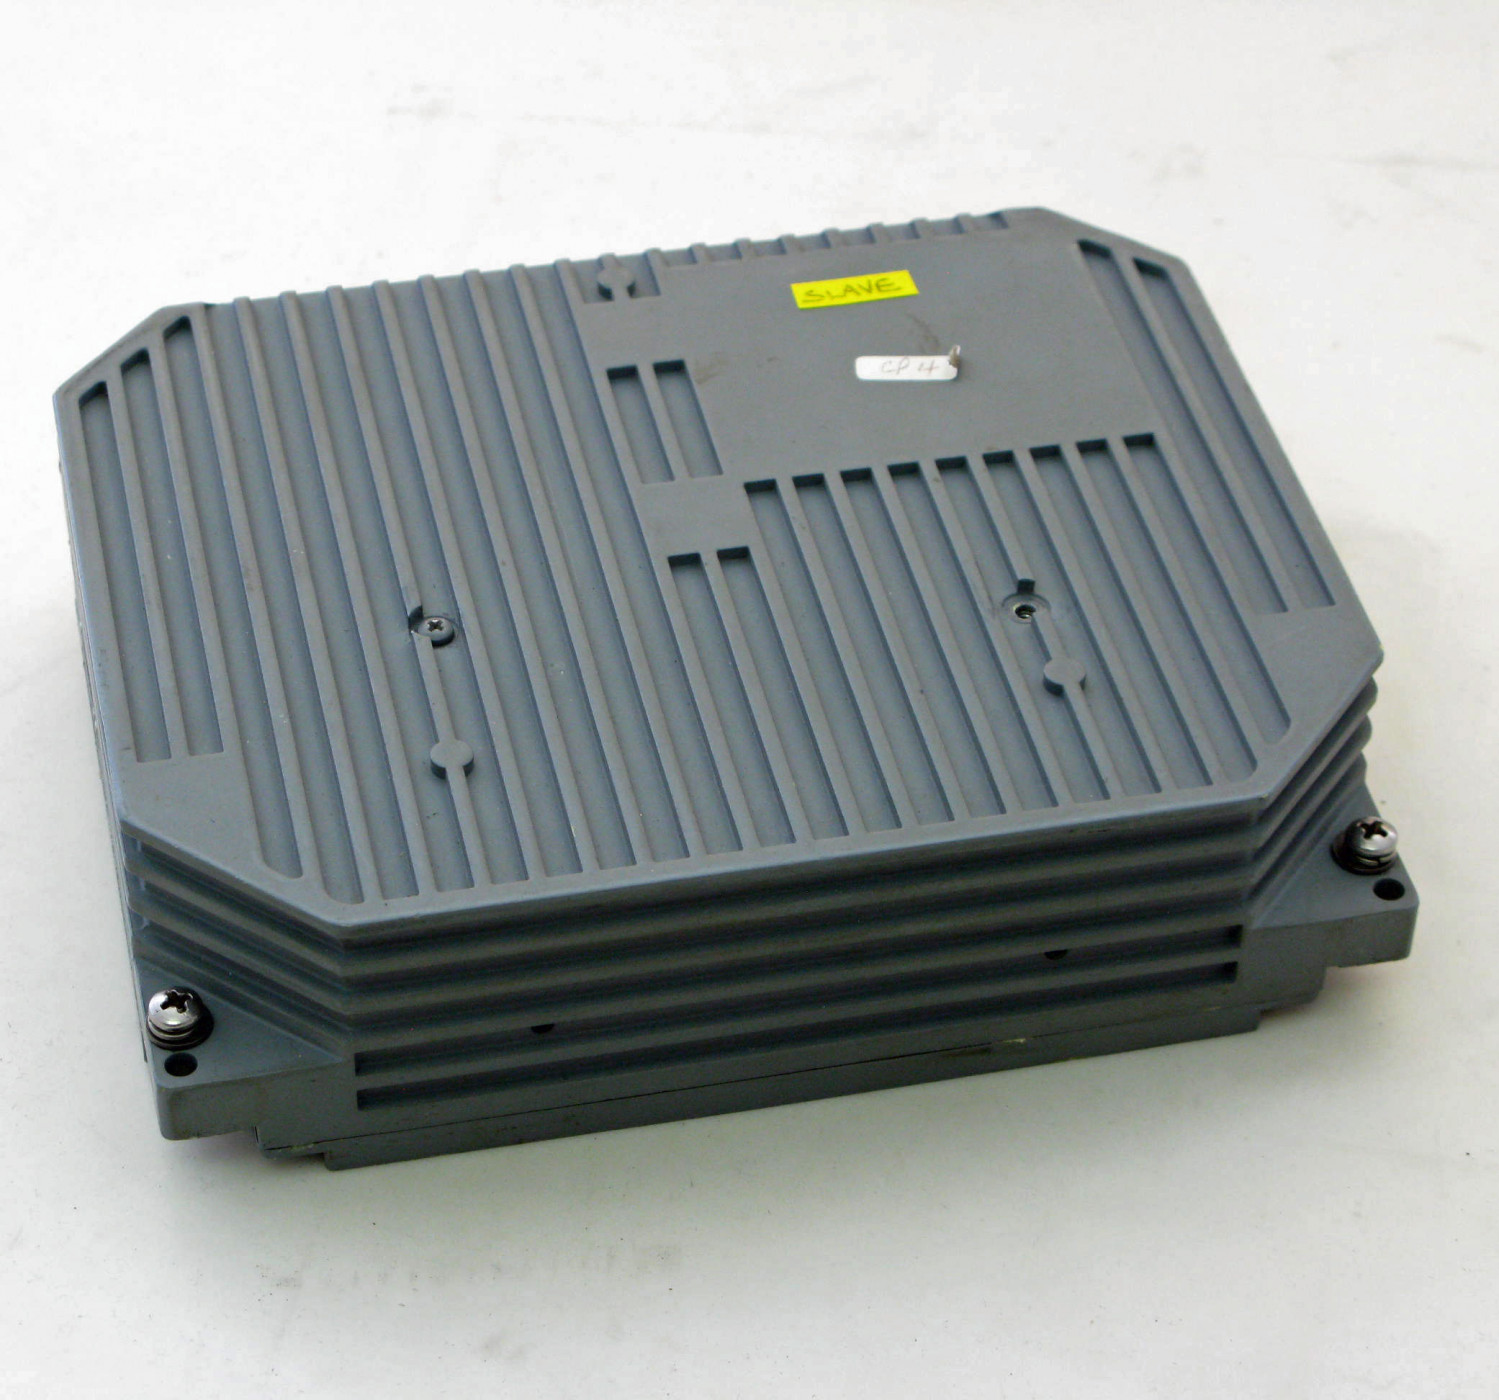 SCADC PSM   (Power Supply Module)